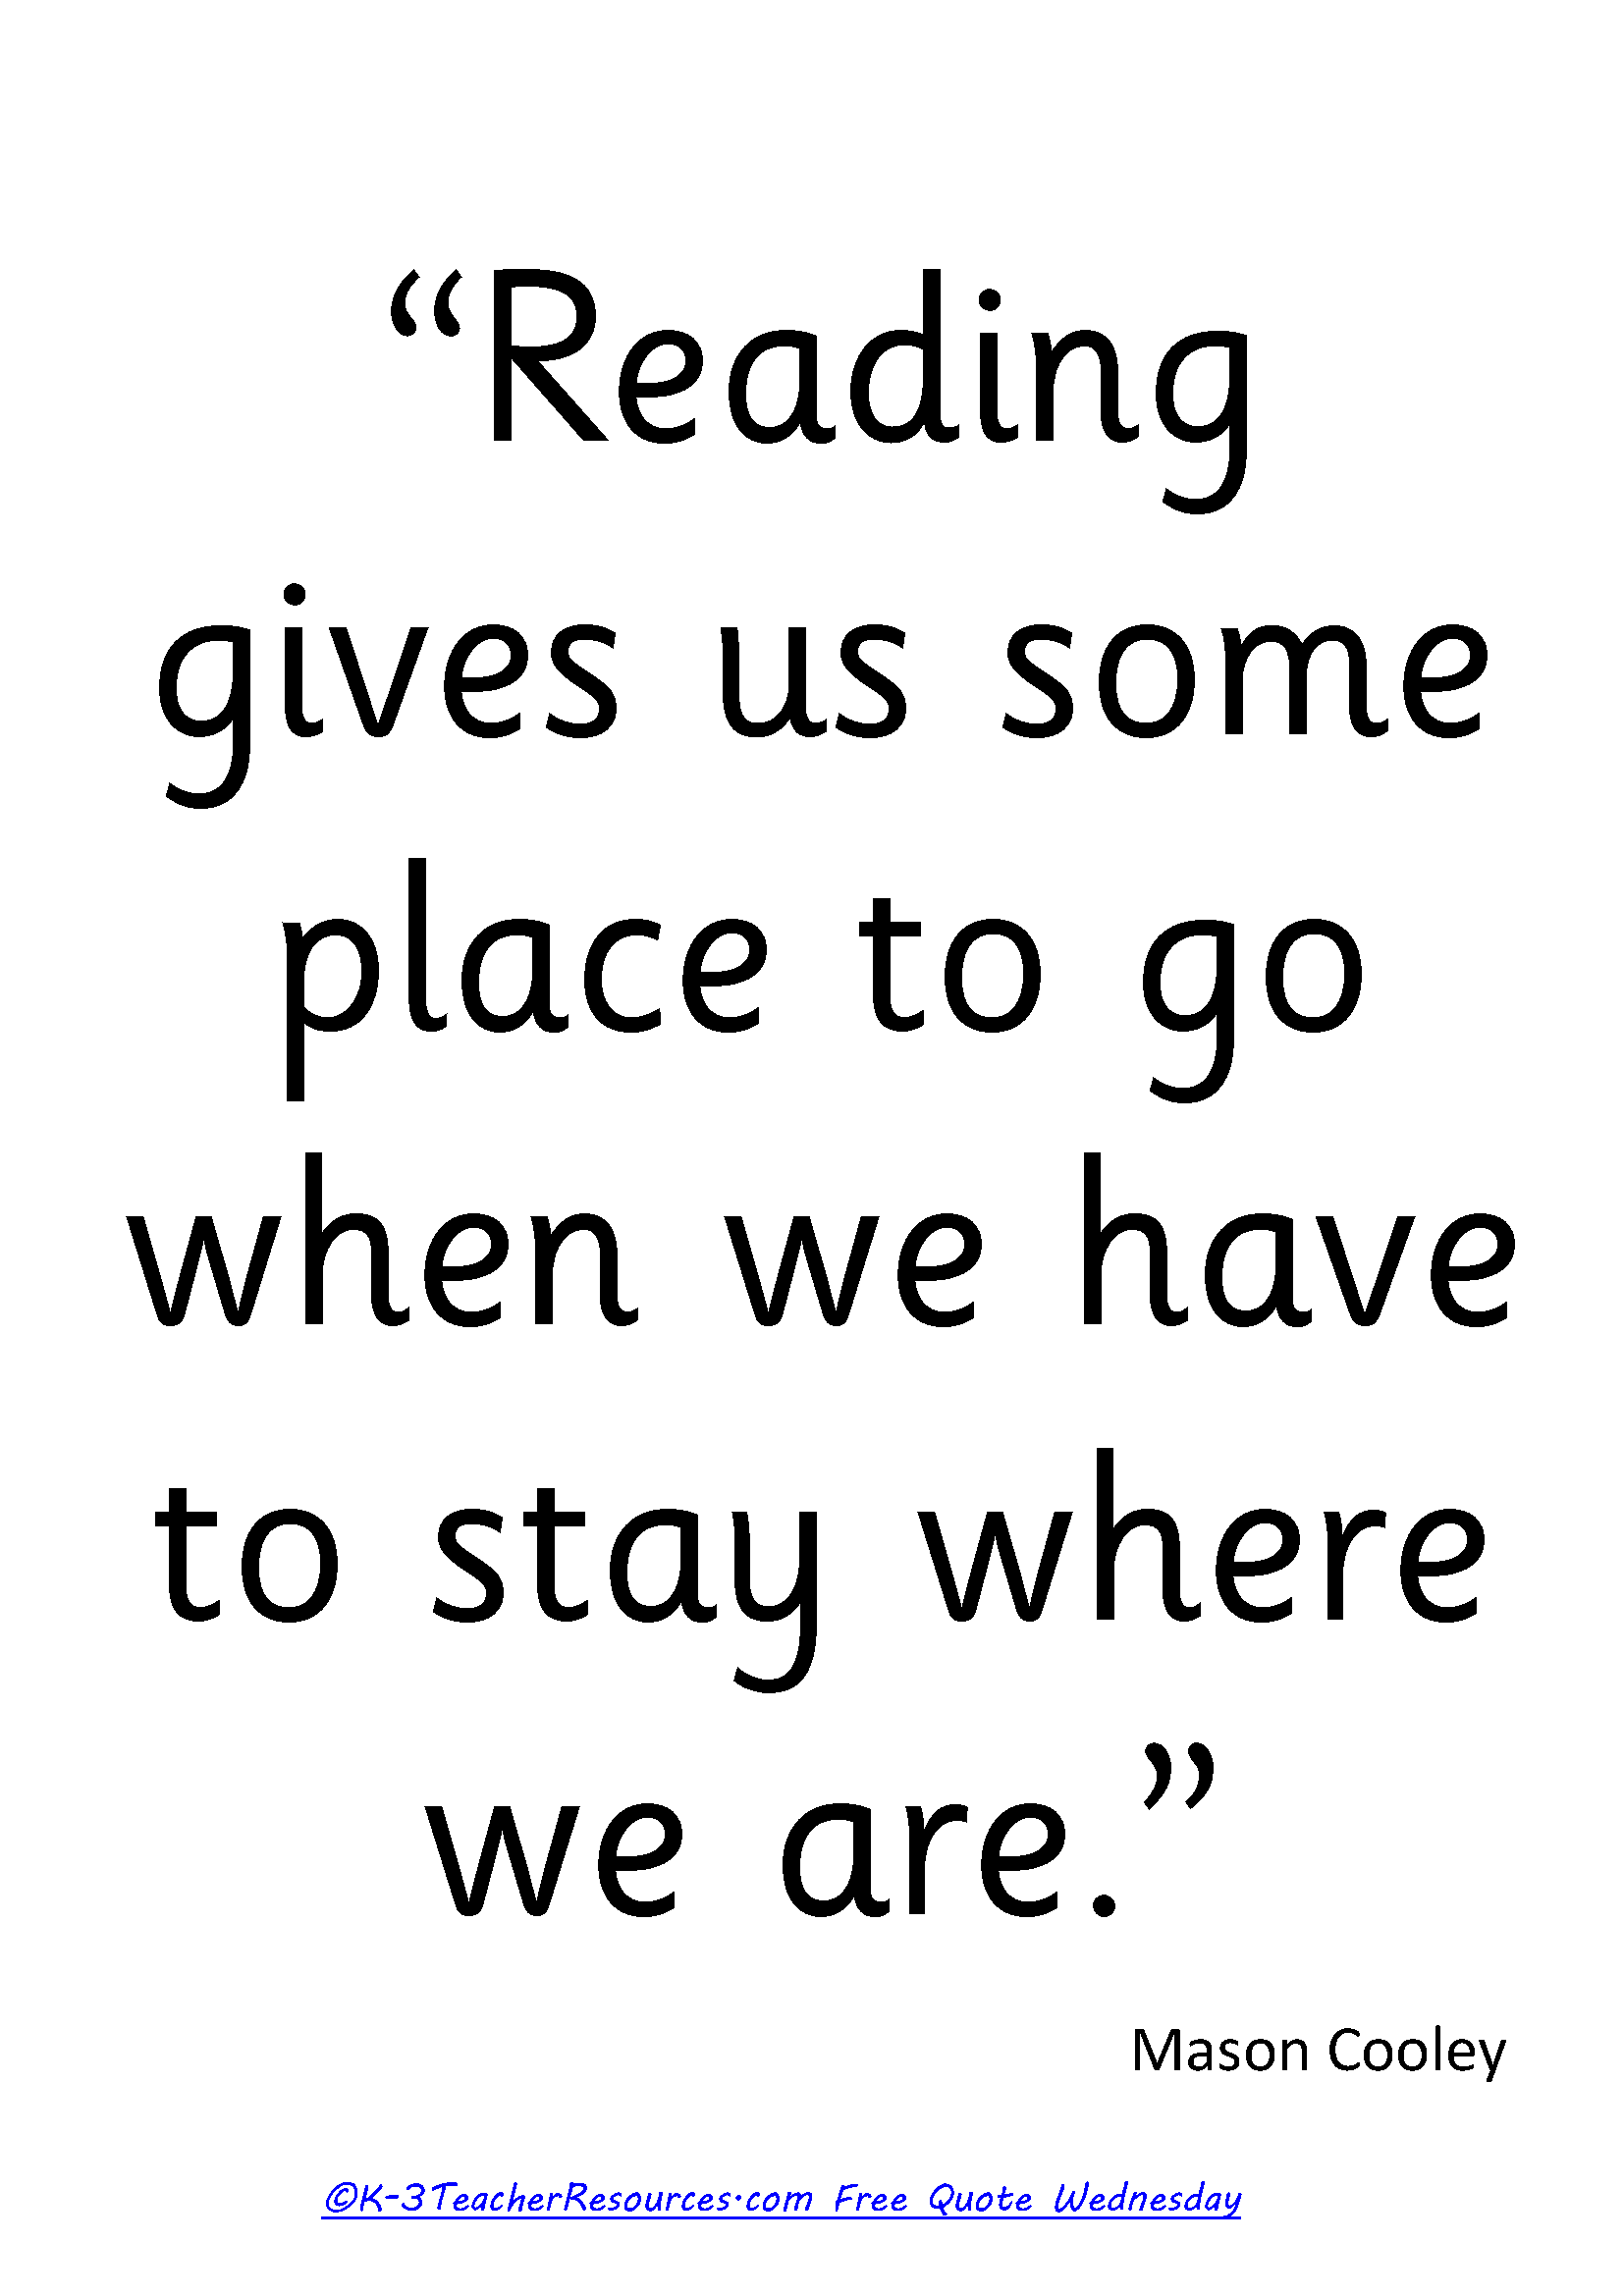 Free reading images and quotes free reading gives us a place to go childrens quote